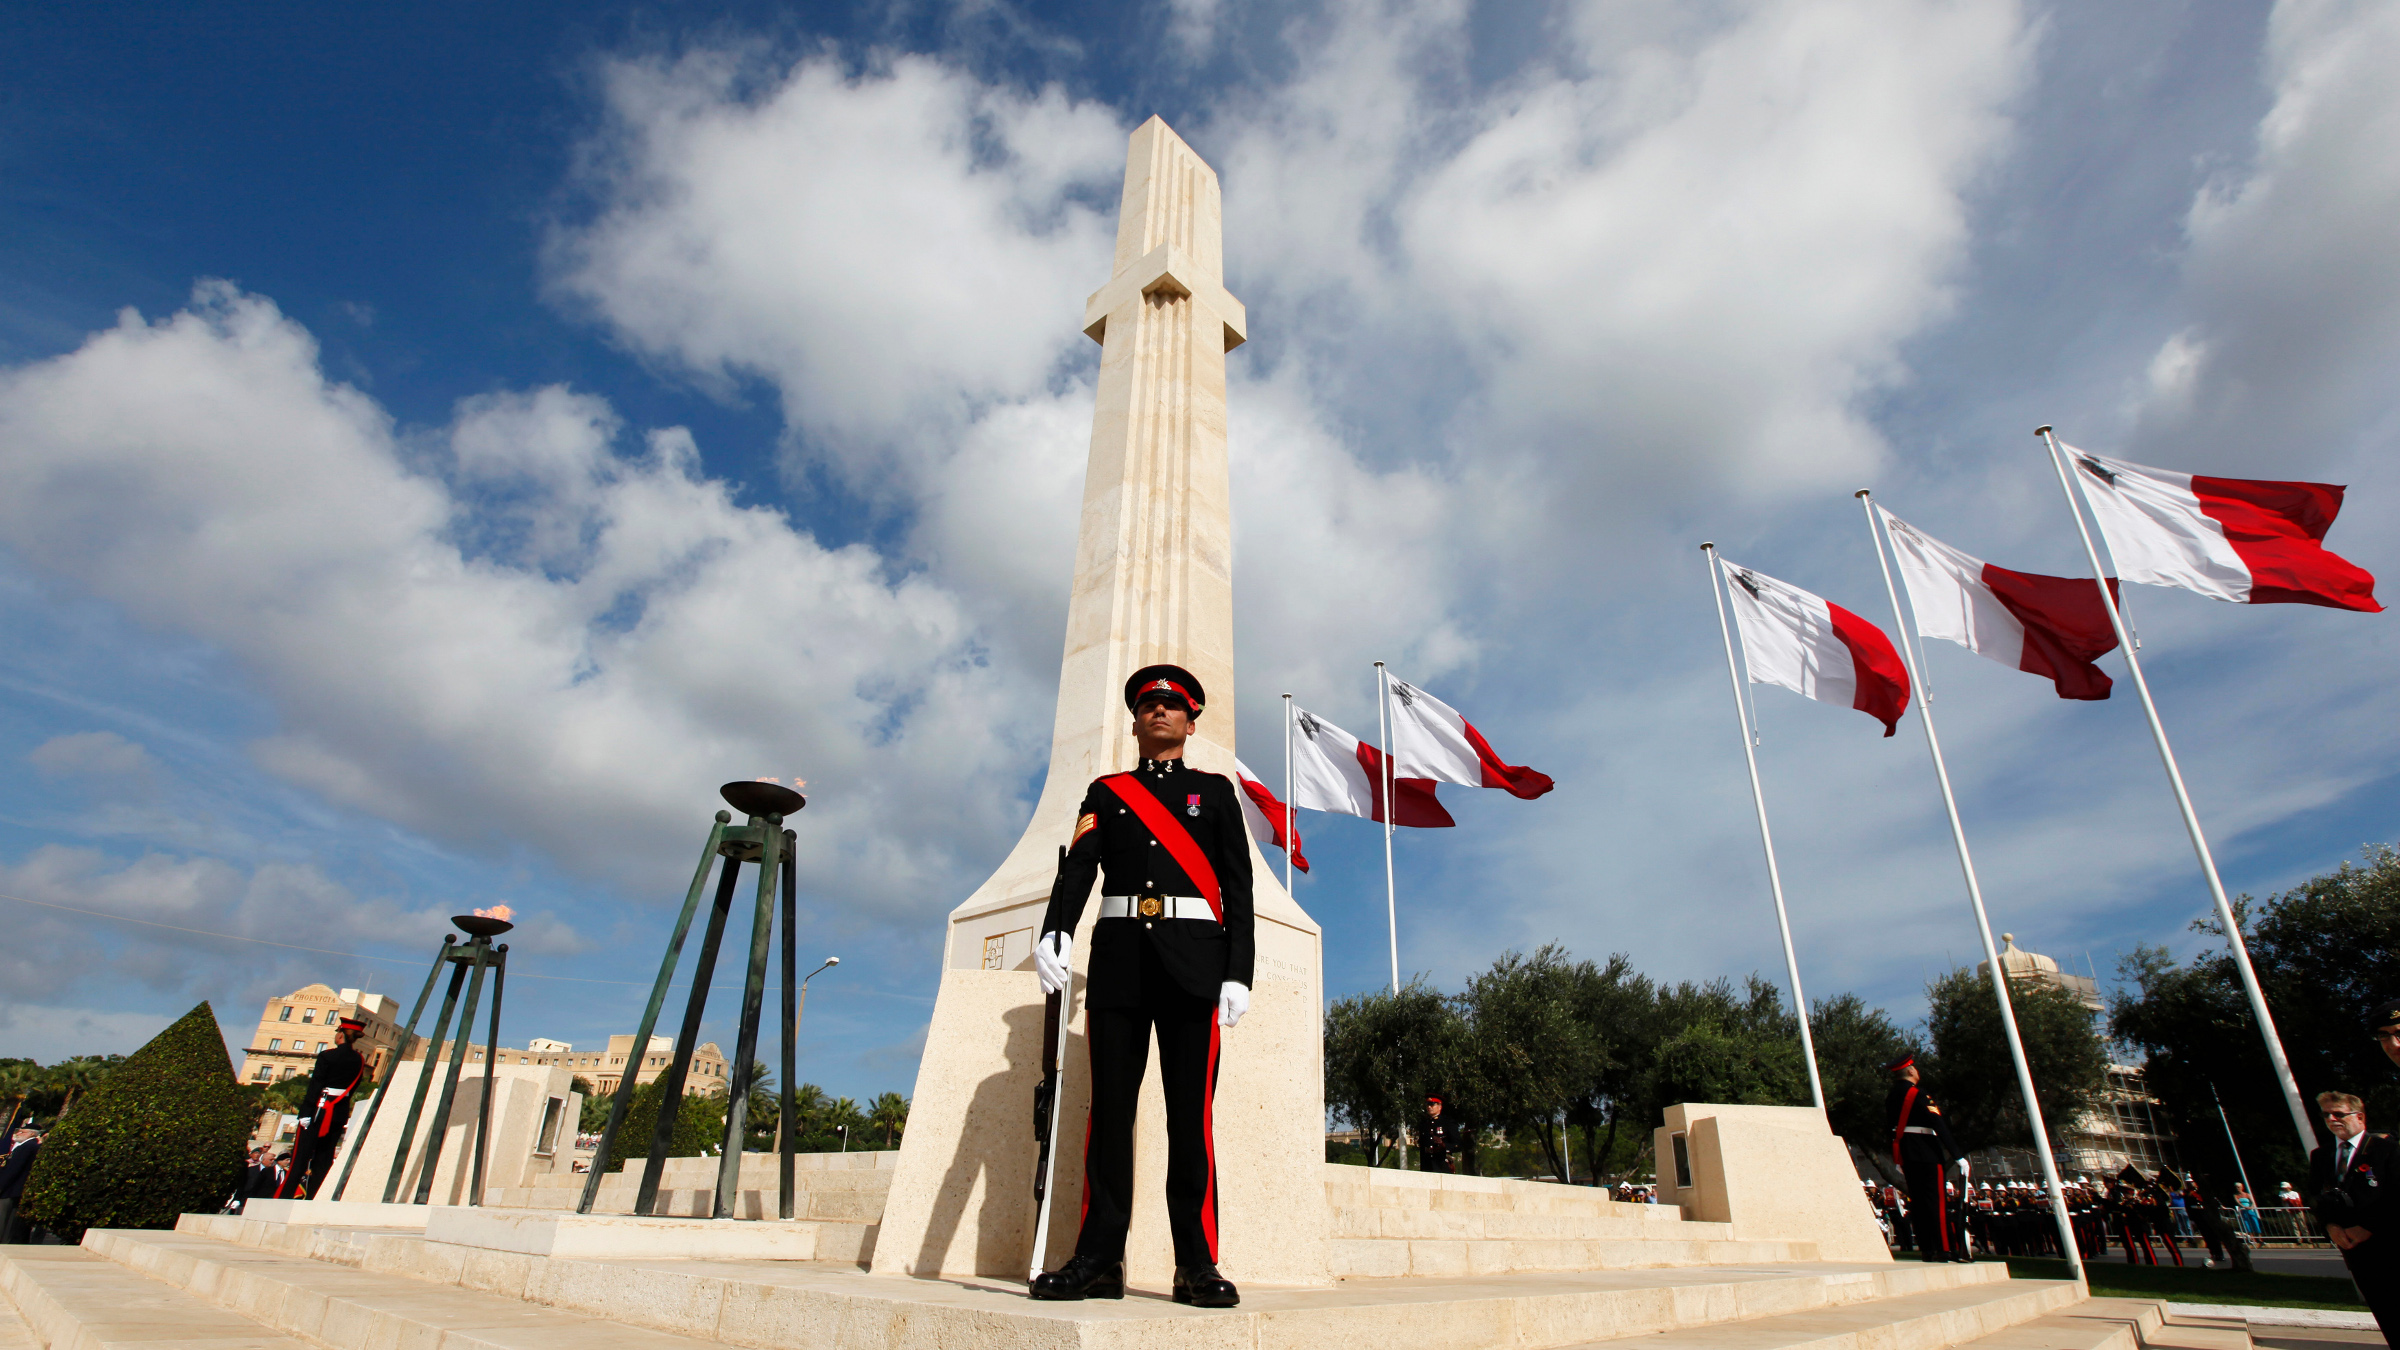 Armed Forces of Malta soldiers stand by the War Memorial cenotaph during a Remembrance Day memorial service in Floriana, on the outskirts of Valletta, November 10, 2013. Representatives of the Commonwealth observed two minutes silence on Remembrance Sunday to commemorate members of the armed forces who were killed during both World Wars.